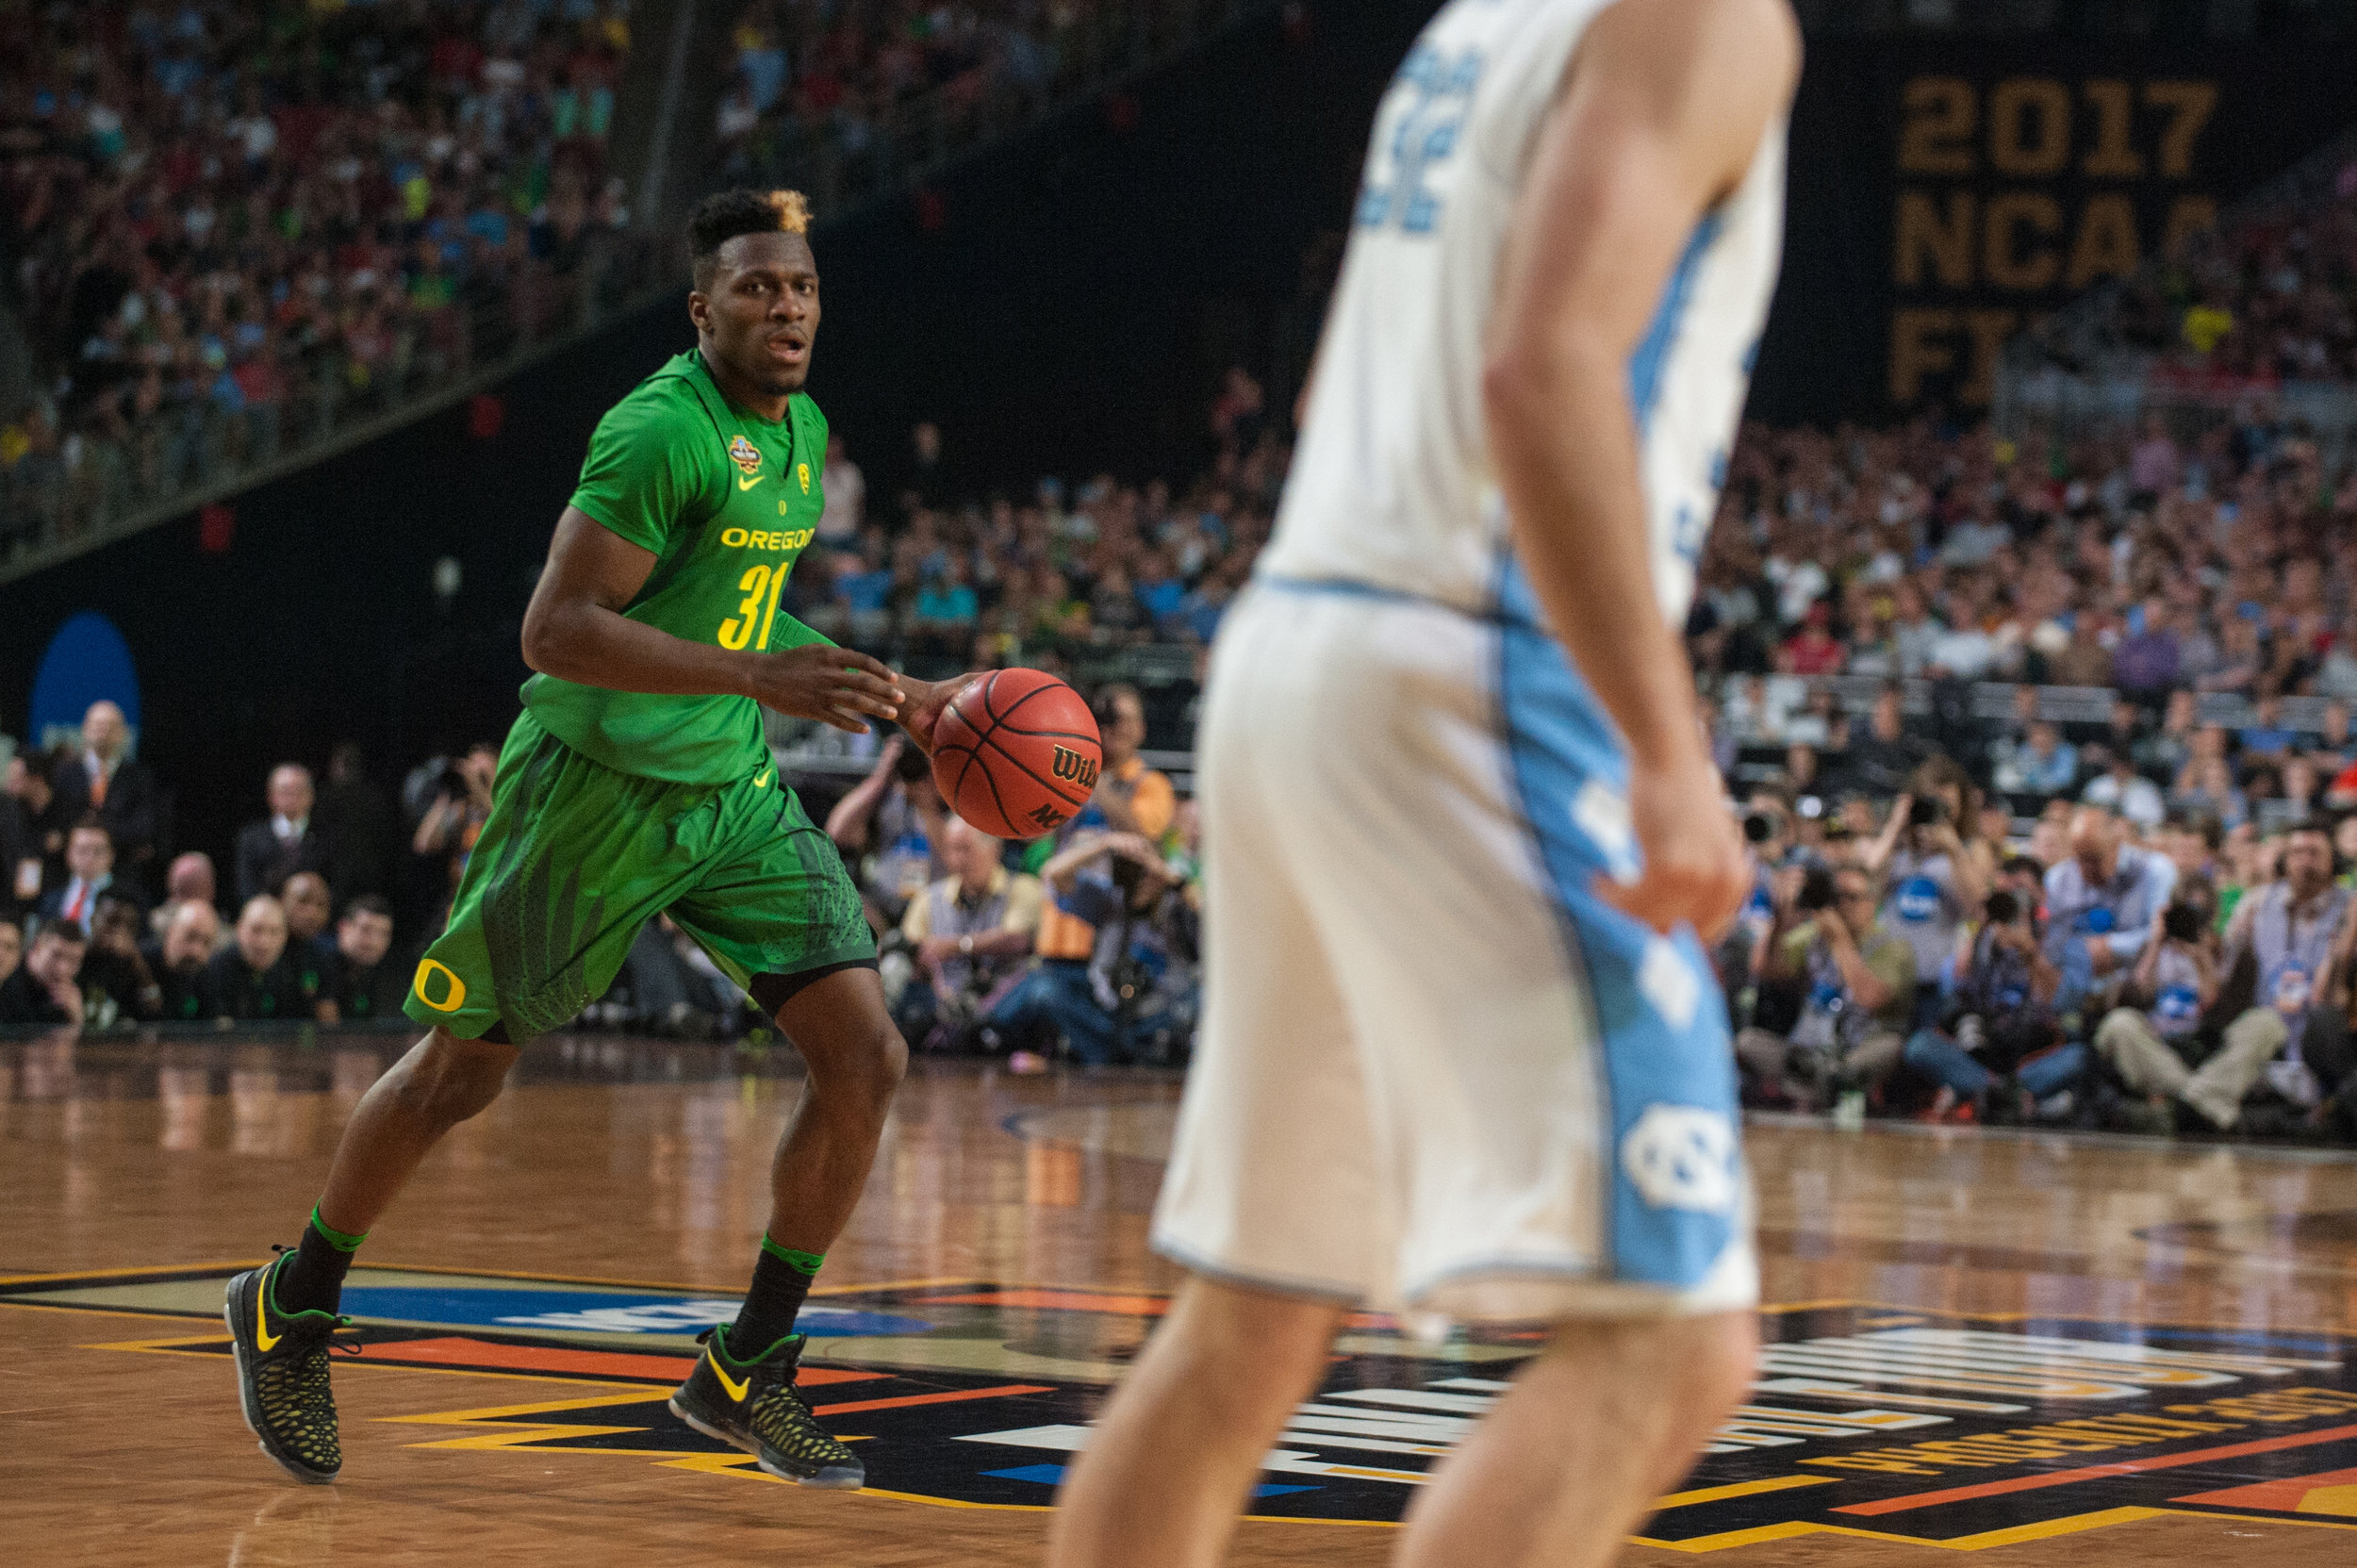 17.03.31.emg.an.final.four.oregon.vs.north.carolina-2-2.jpg